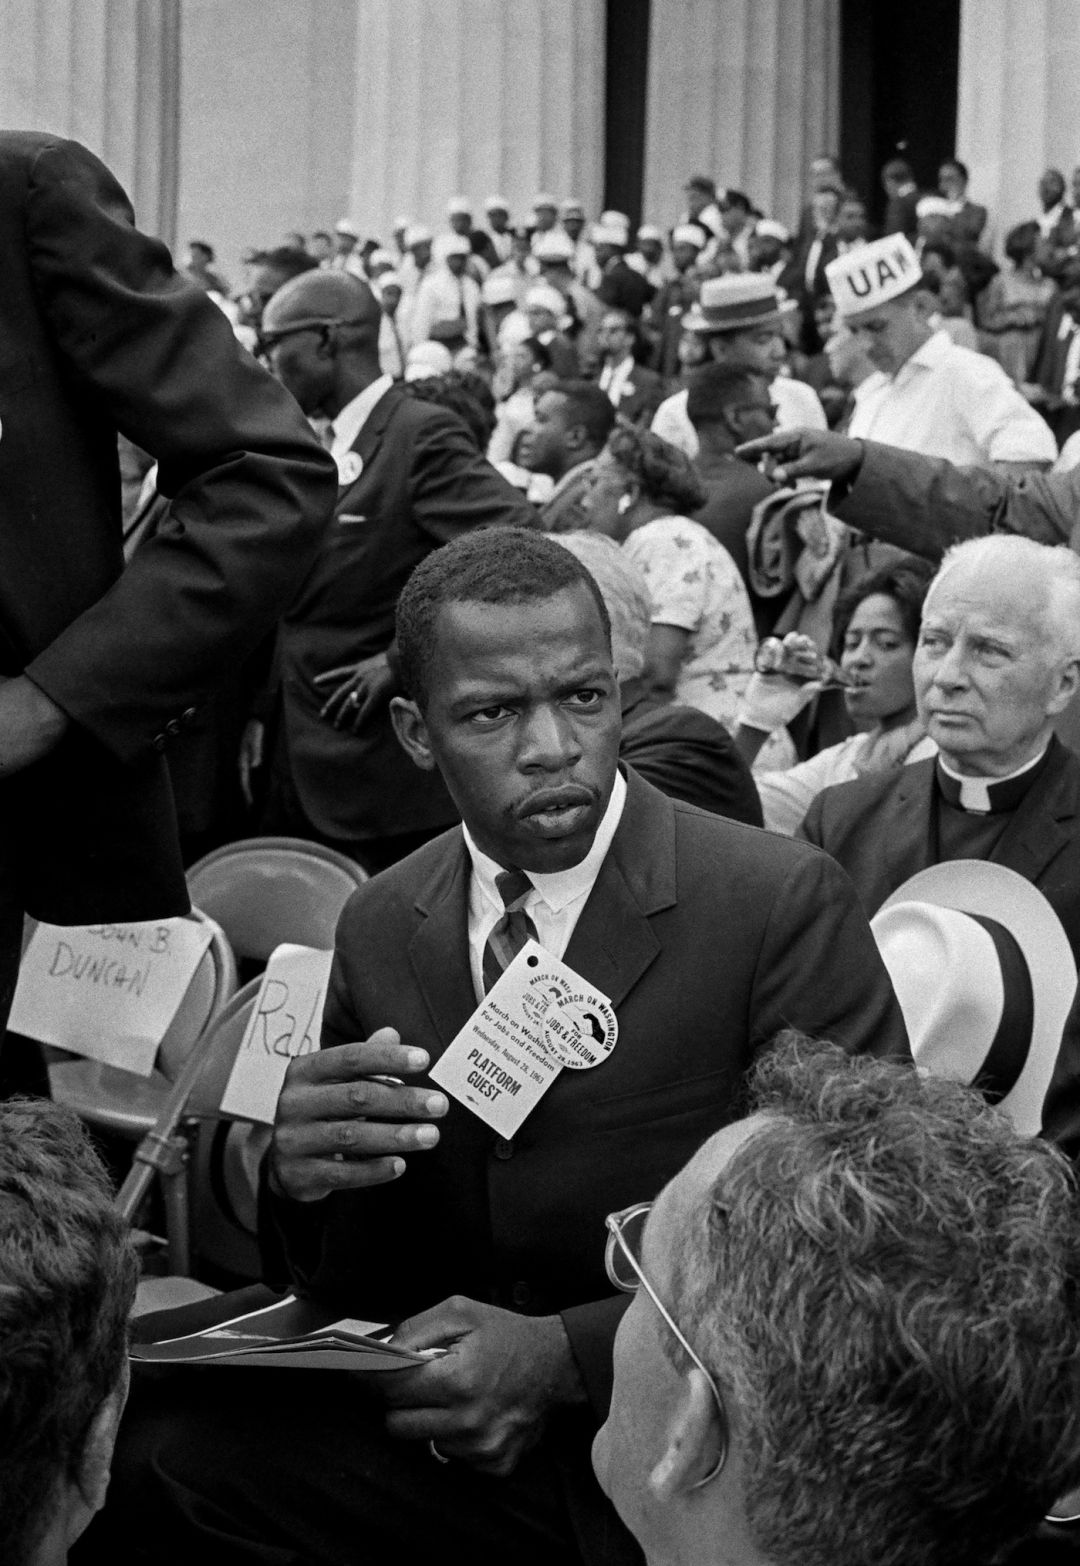 575 000 Images By Civil Rights Photographer Bob Adelman Go